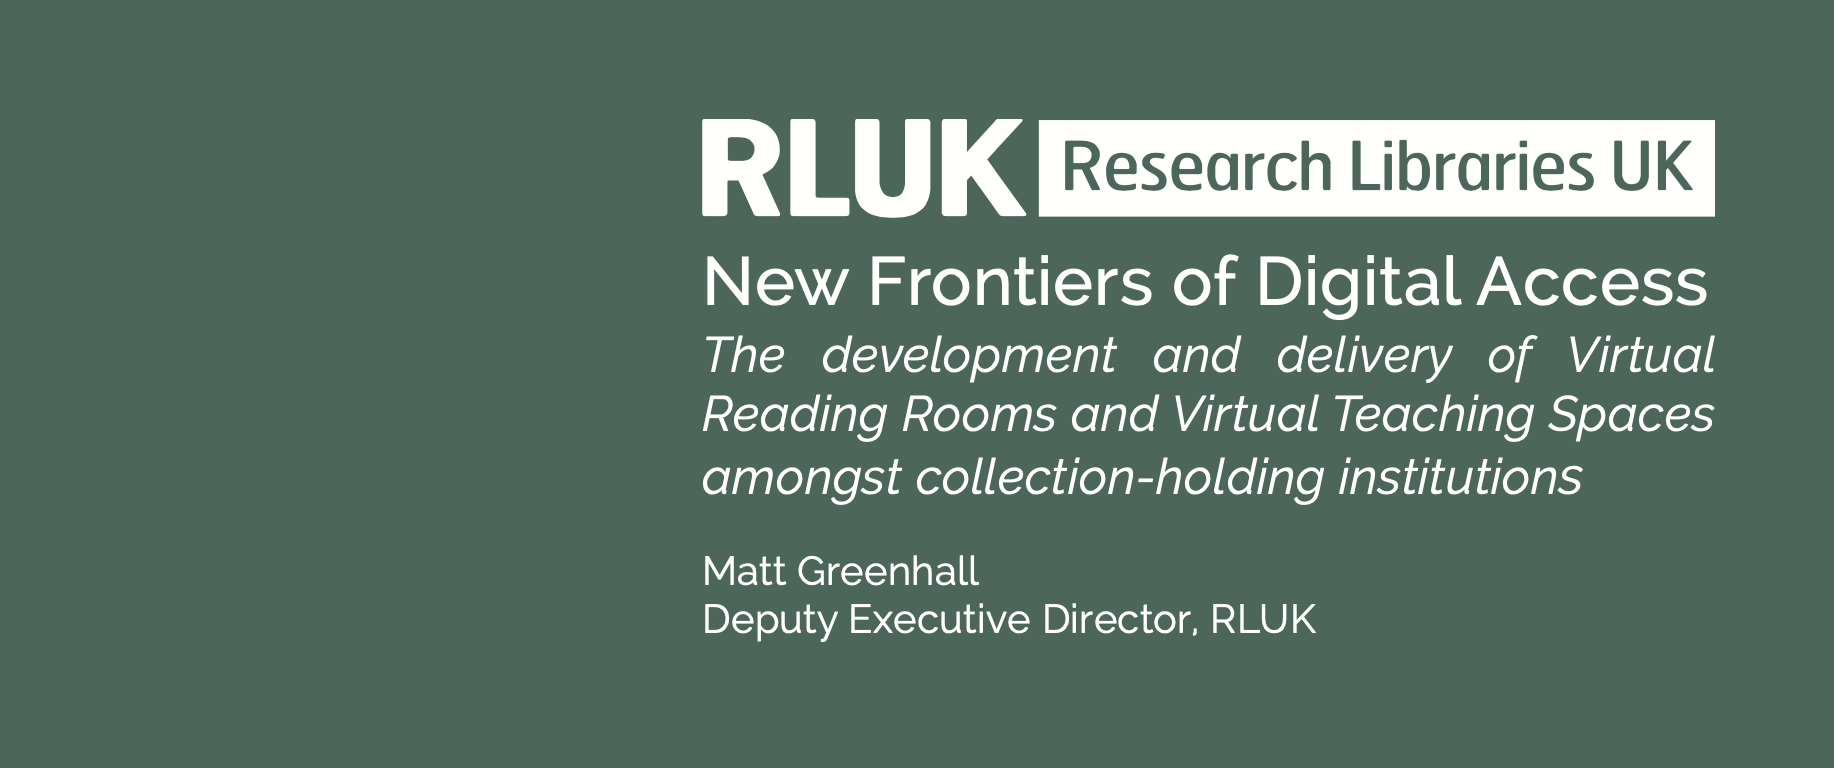 New Frontiers of Digital Access: The development and delivery of VRRs and VTSs